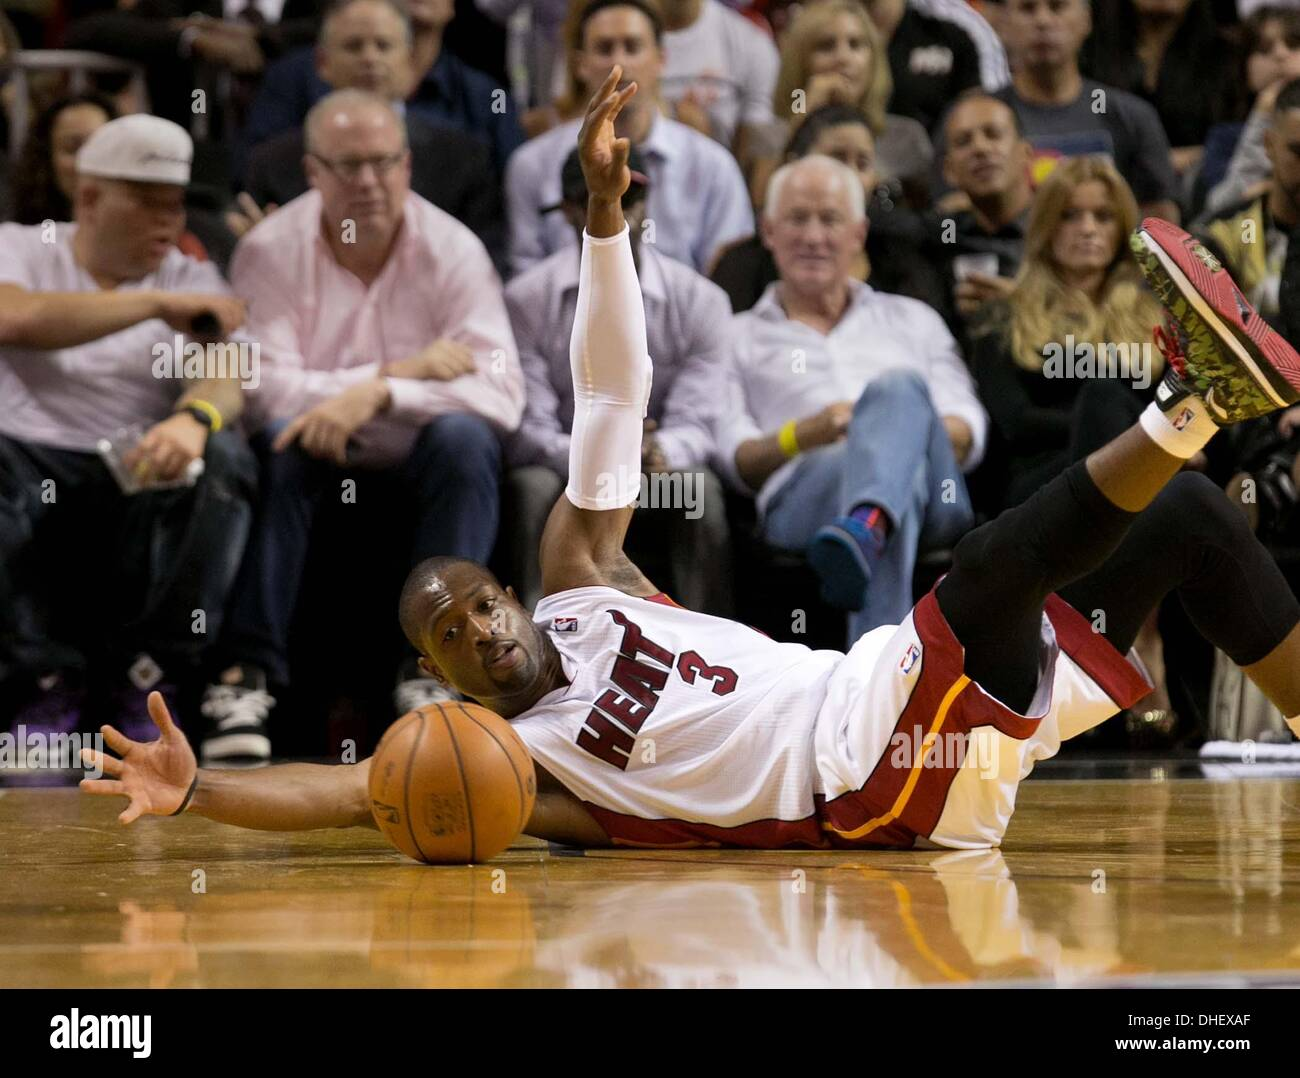 Miami, Florida, USA. 7th Nov, 2013. Miami Heat shooting guard Dwyane Wade (3) scrambles after a loose ball at AmericanAirlines Stock Photo